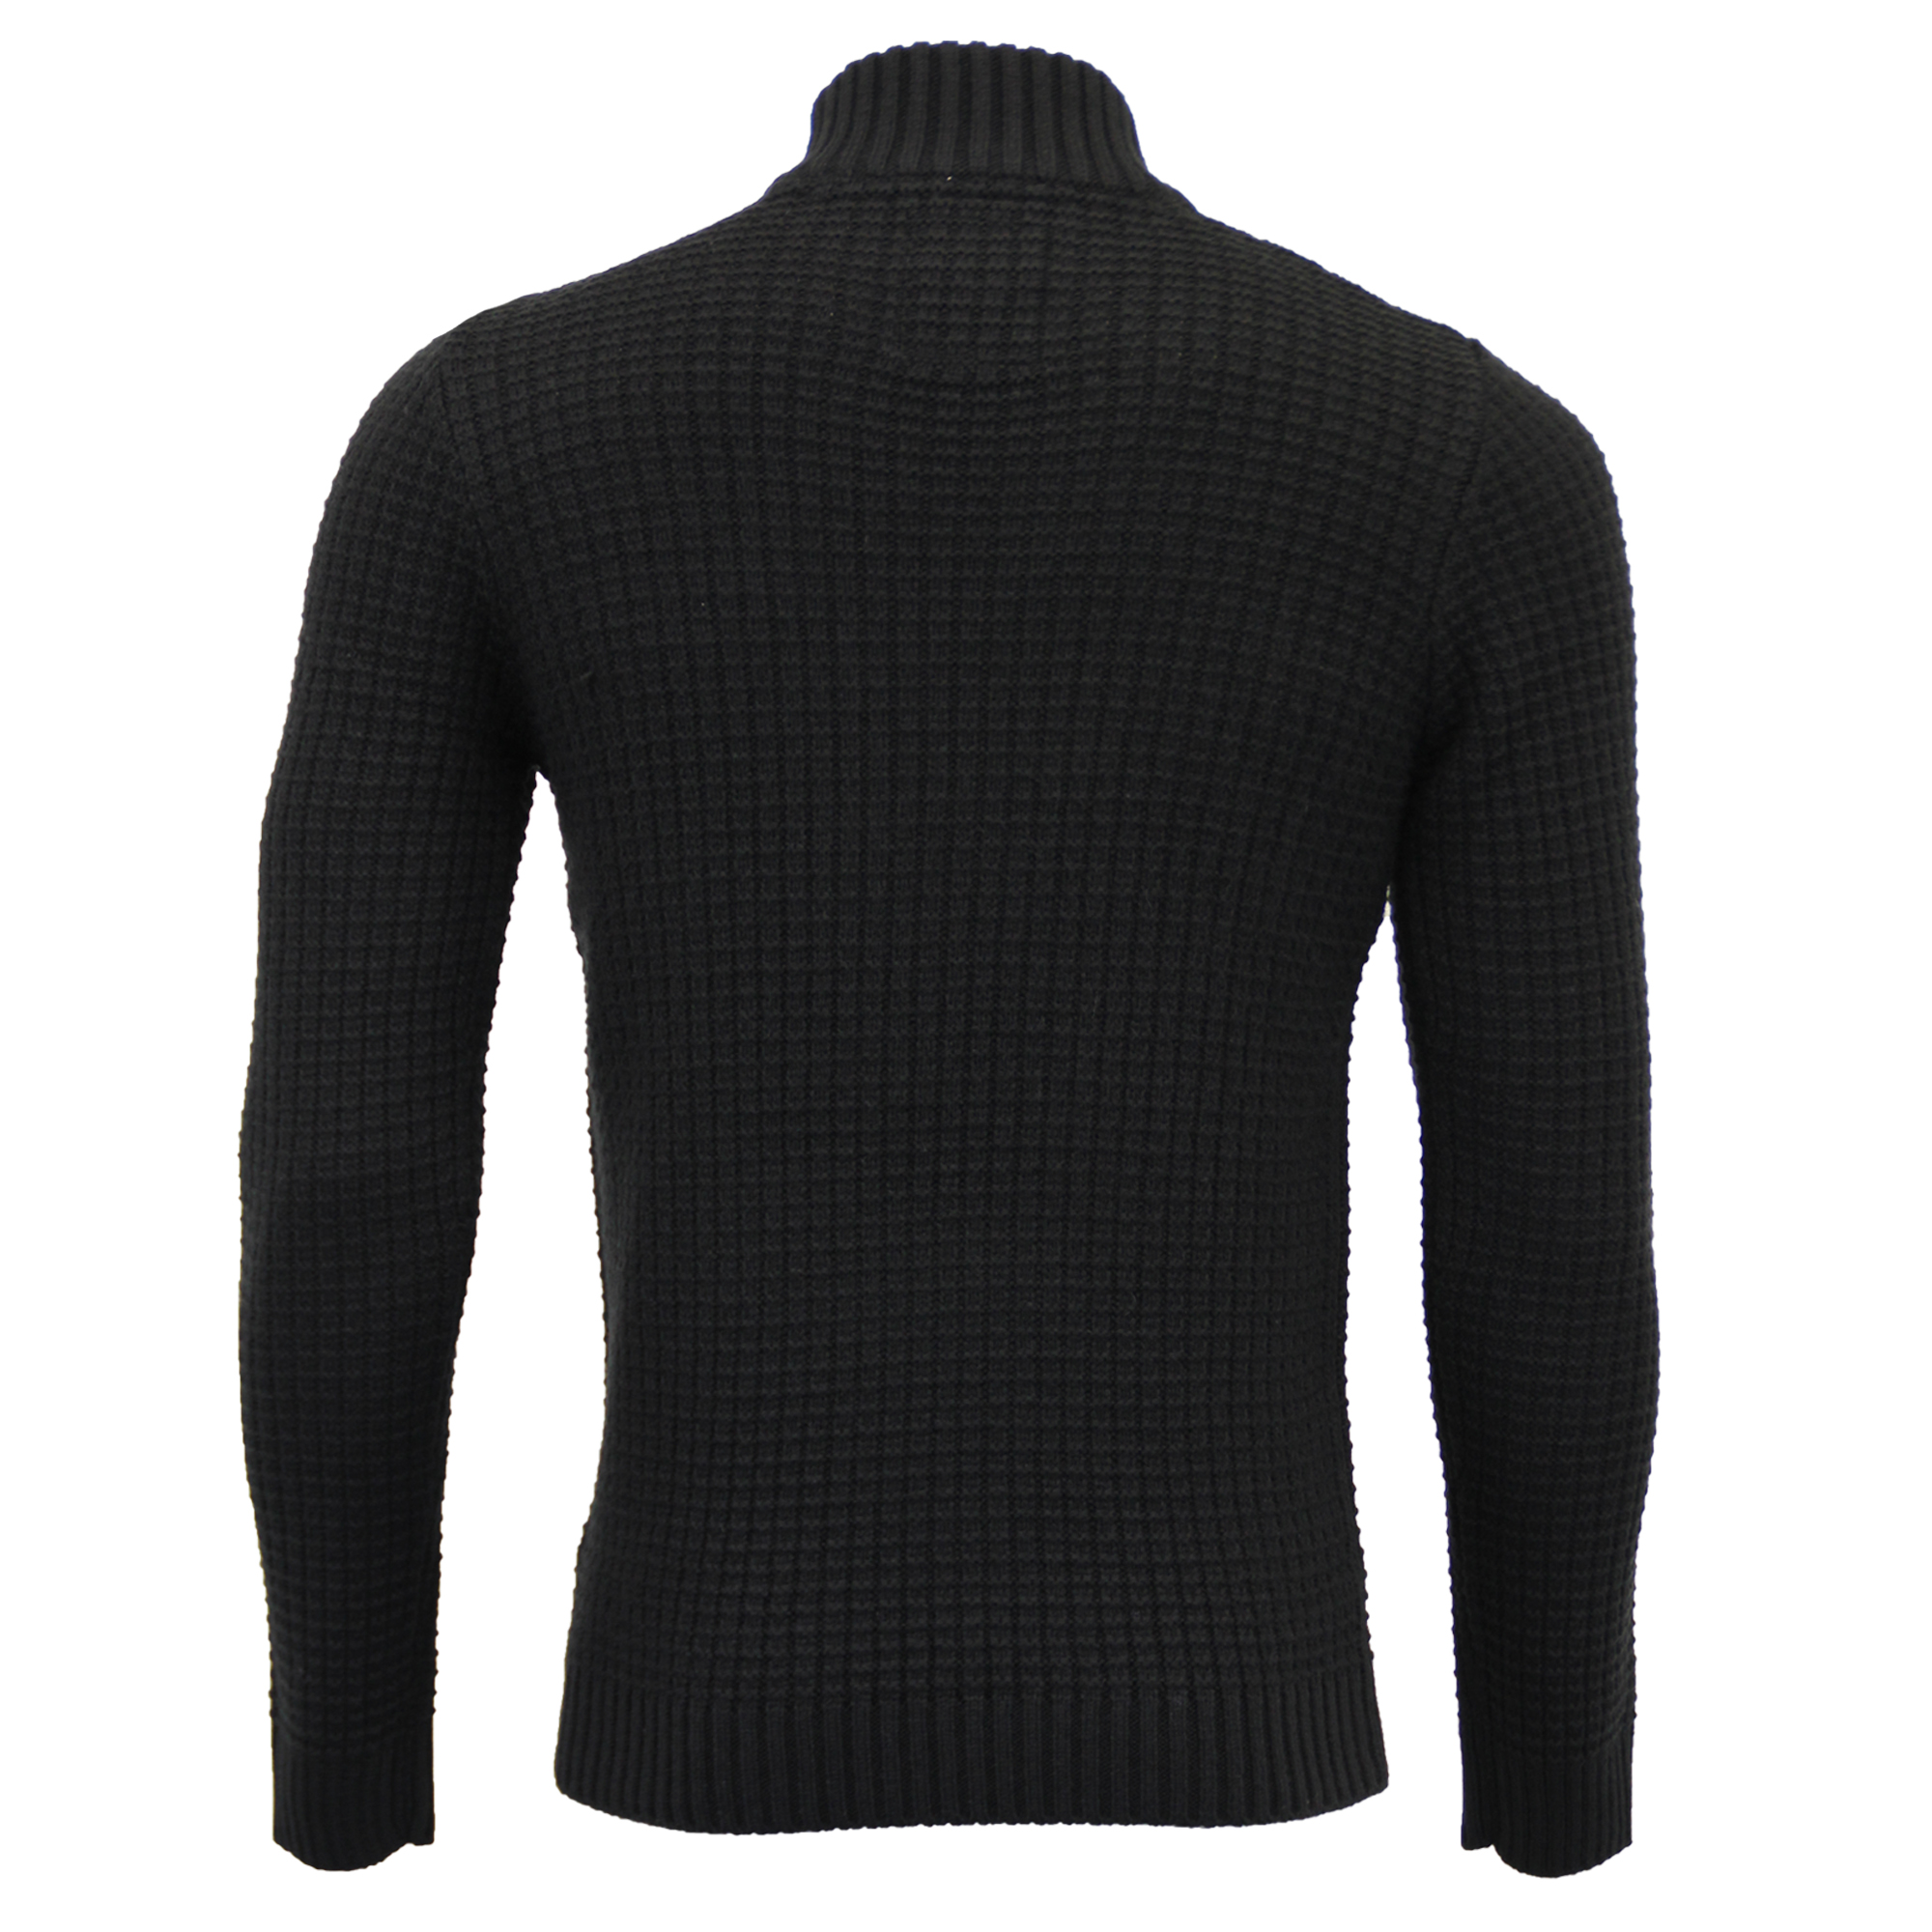 Mens-Polo-Neck-Wool-Mix-Jumper-Threadbare-Knitted-Sweater-Top-Waffle-Winter-New thumbnail 3